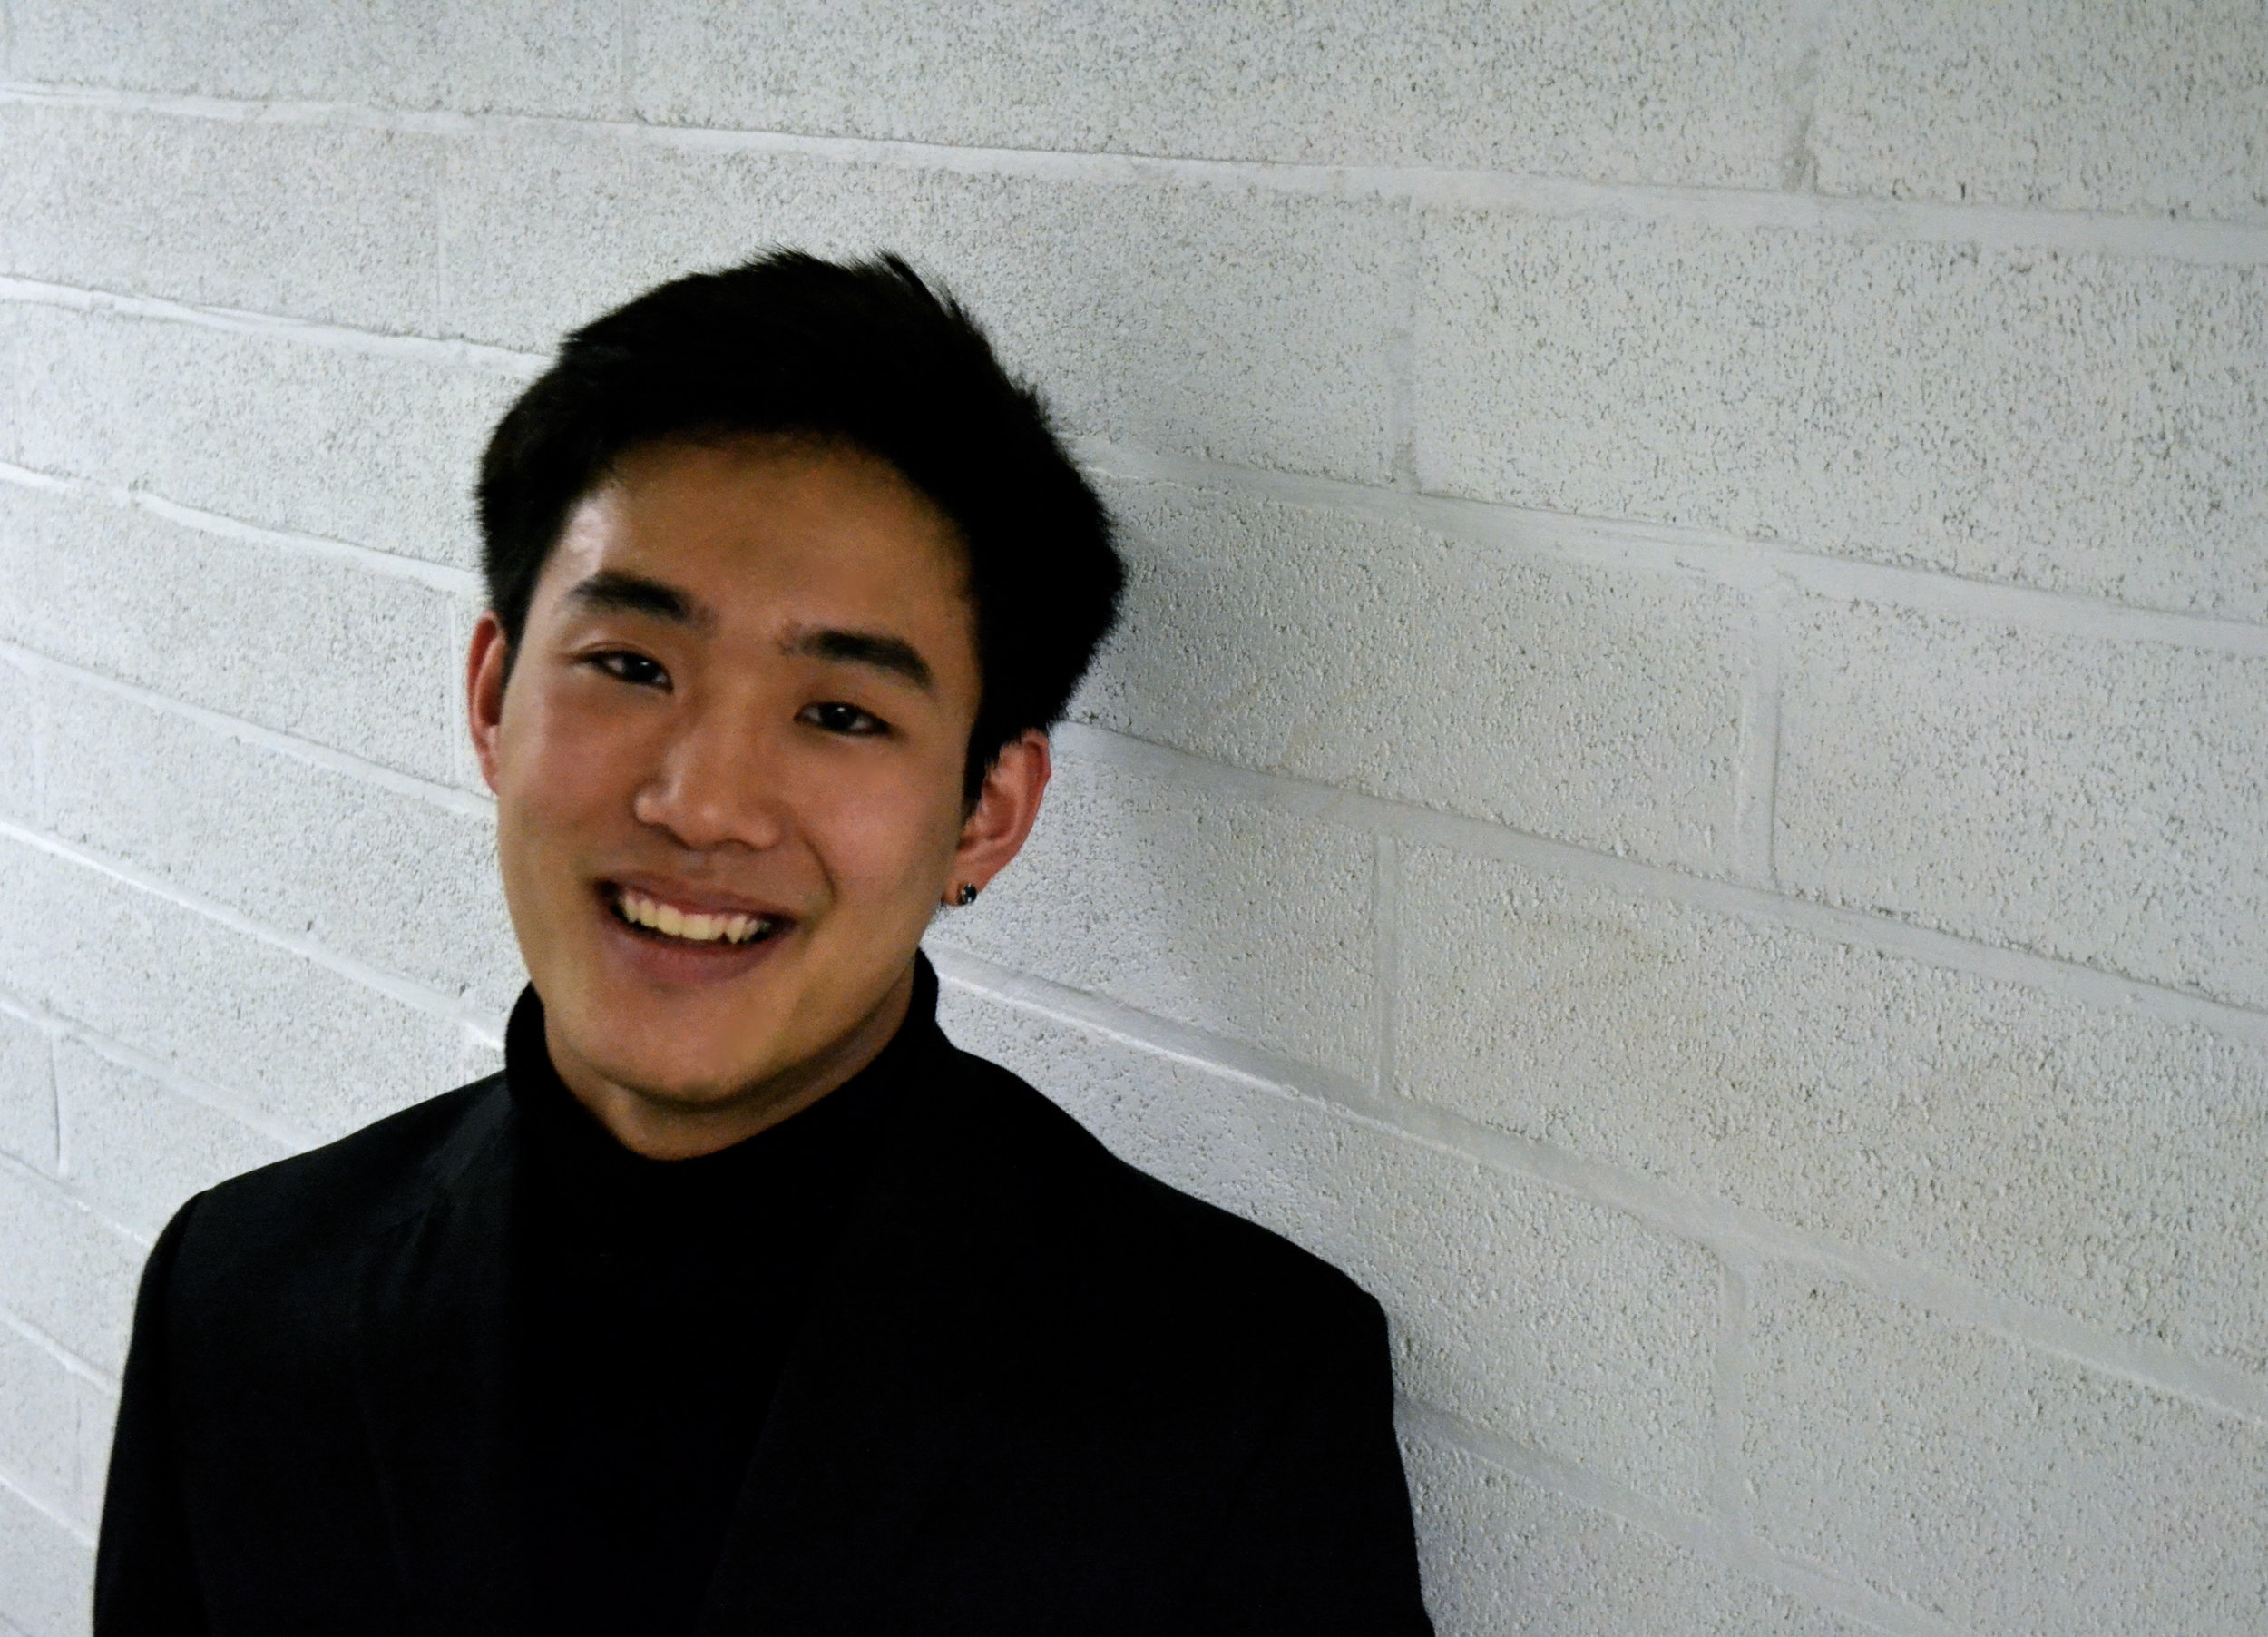 Seido Karasaki, viola - Seido Karasaki, a Naxos recording artist, is currently an Artist Diploma student at the McDuffie Center for Strings. His latest chamber music recordings of Beethoven's Op. 16 Piano Quartet and other works will appear on the Naxos 250th Beethoven anniversary CD series. Karasaki has also received chamber music residencies with the Detroit Chamber Society and the St. Paul Schubert Club, among others. His solo awards include top prizes at the Ohio Viola Society and the Indianapolis Musicale Matinee competitions, and he was a competitor in the 2019 Lionel Tertis competition. He is also on the sub-list for the Cincinnati, Atlanta, and Indianapolis symphonies. Karasaki completed a MM with Atar Arad as his Assistant Instructor in 2018, and he earned a BM from Oberlin Conservatory in 2016. His other mentors include Kirsten Docter, Edward Gazouleas, Steve Wyrczynski, and Victoria Chiang. He enjoys cooking in his spare time.